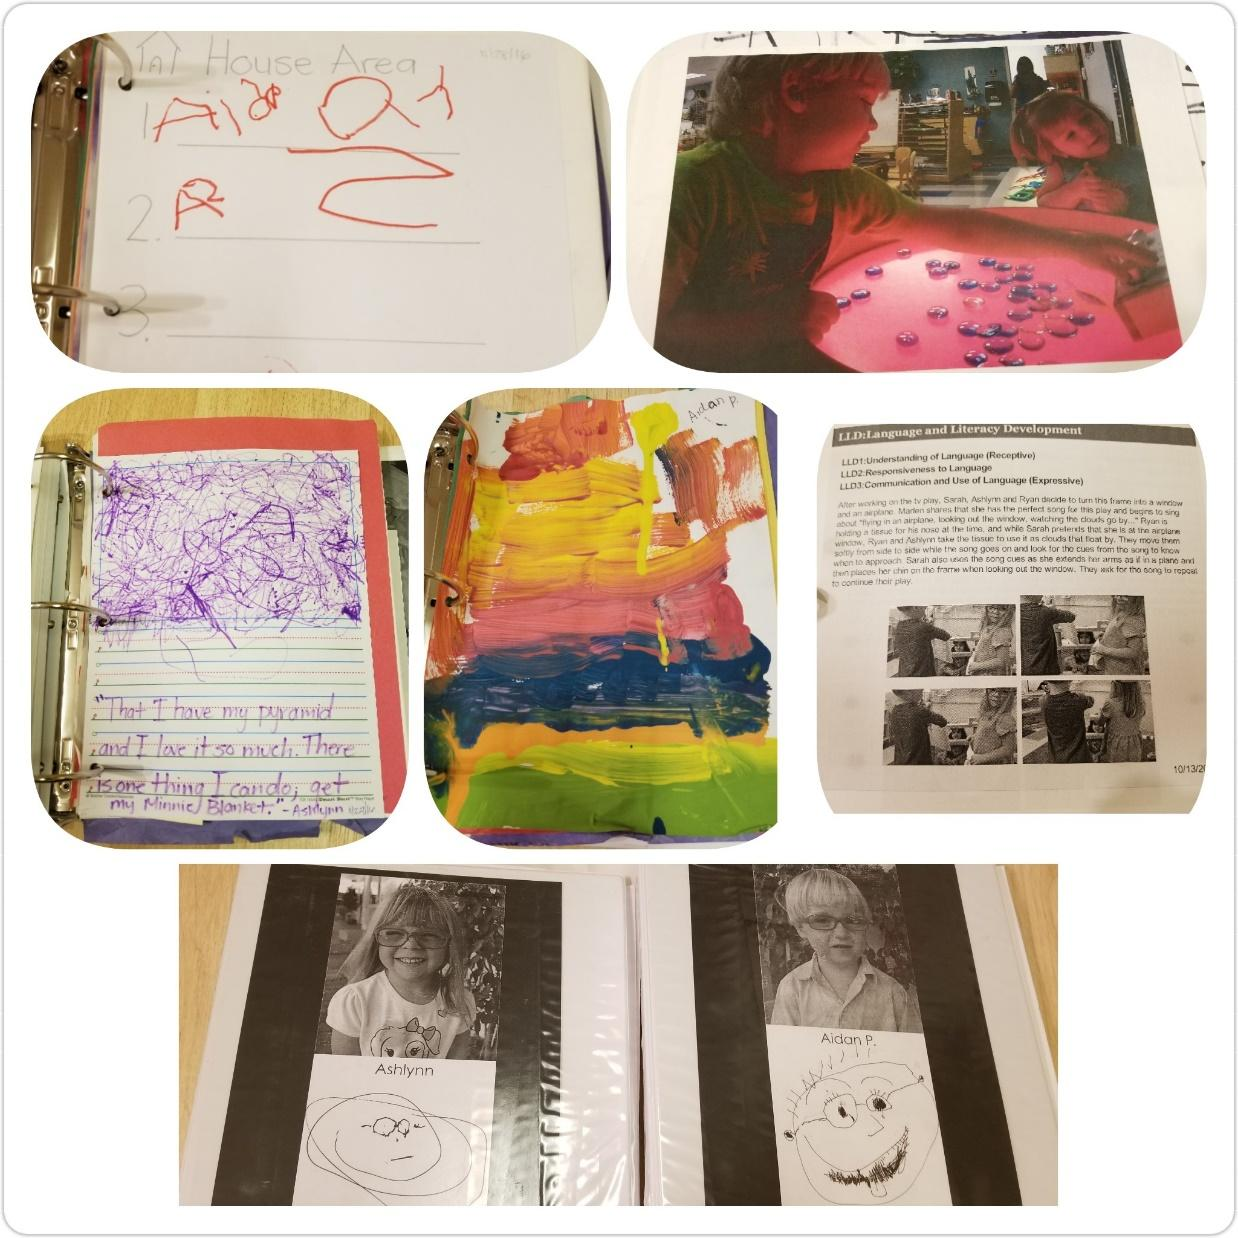 Items from a child's portfolio, including writing, artwork, and pictures.